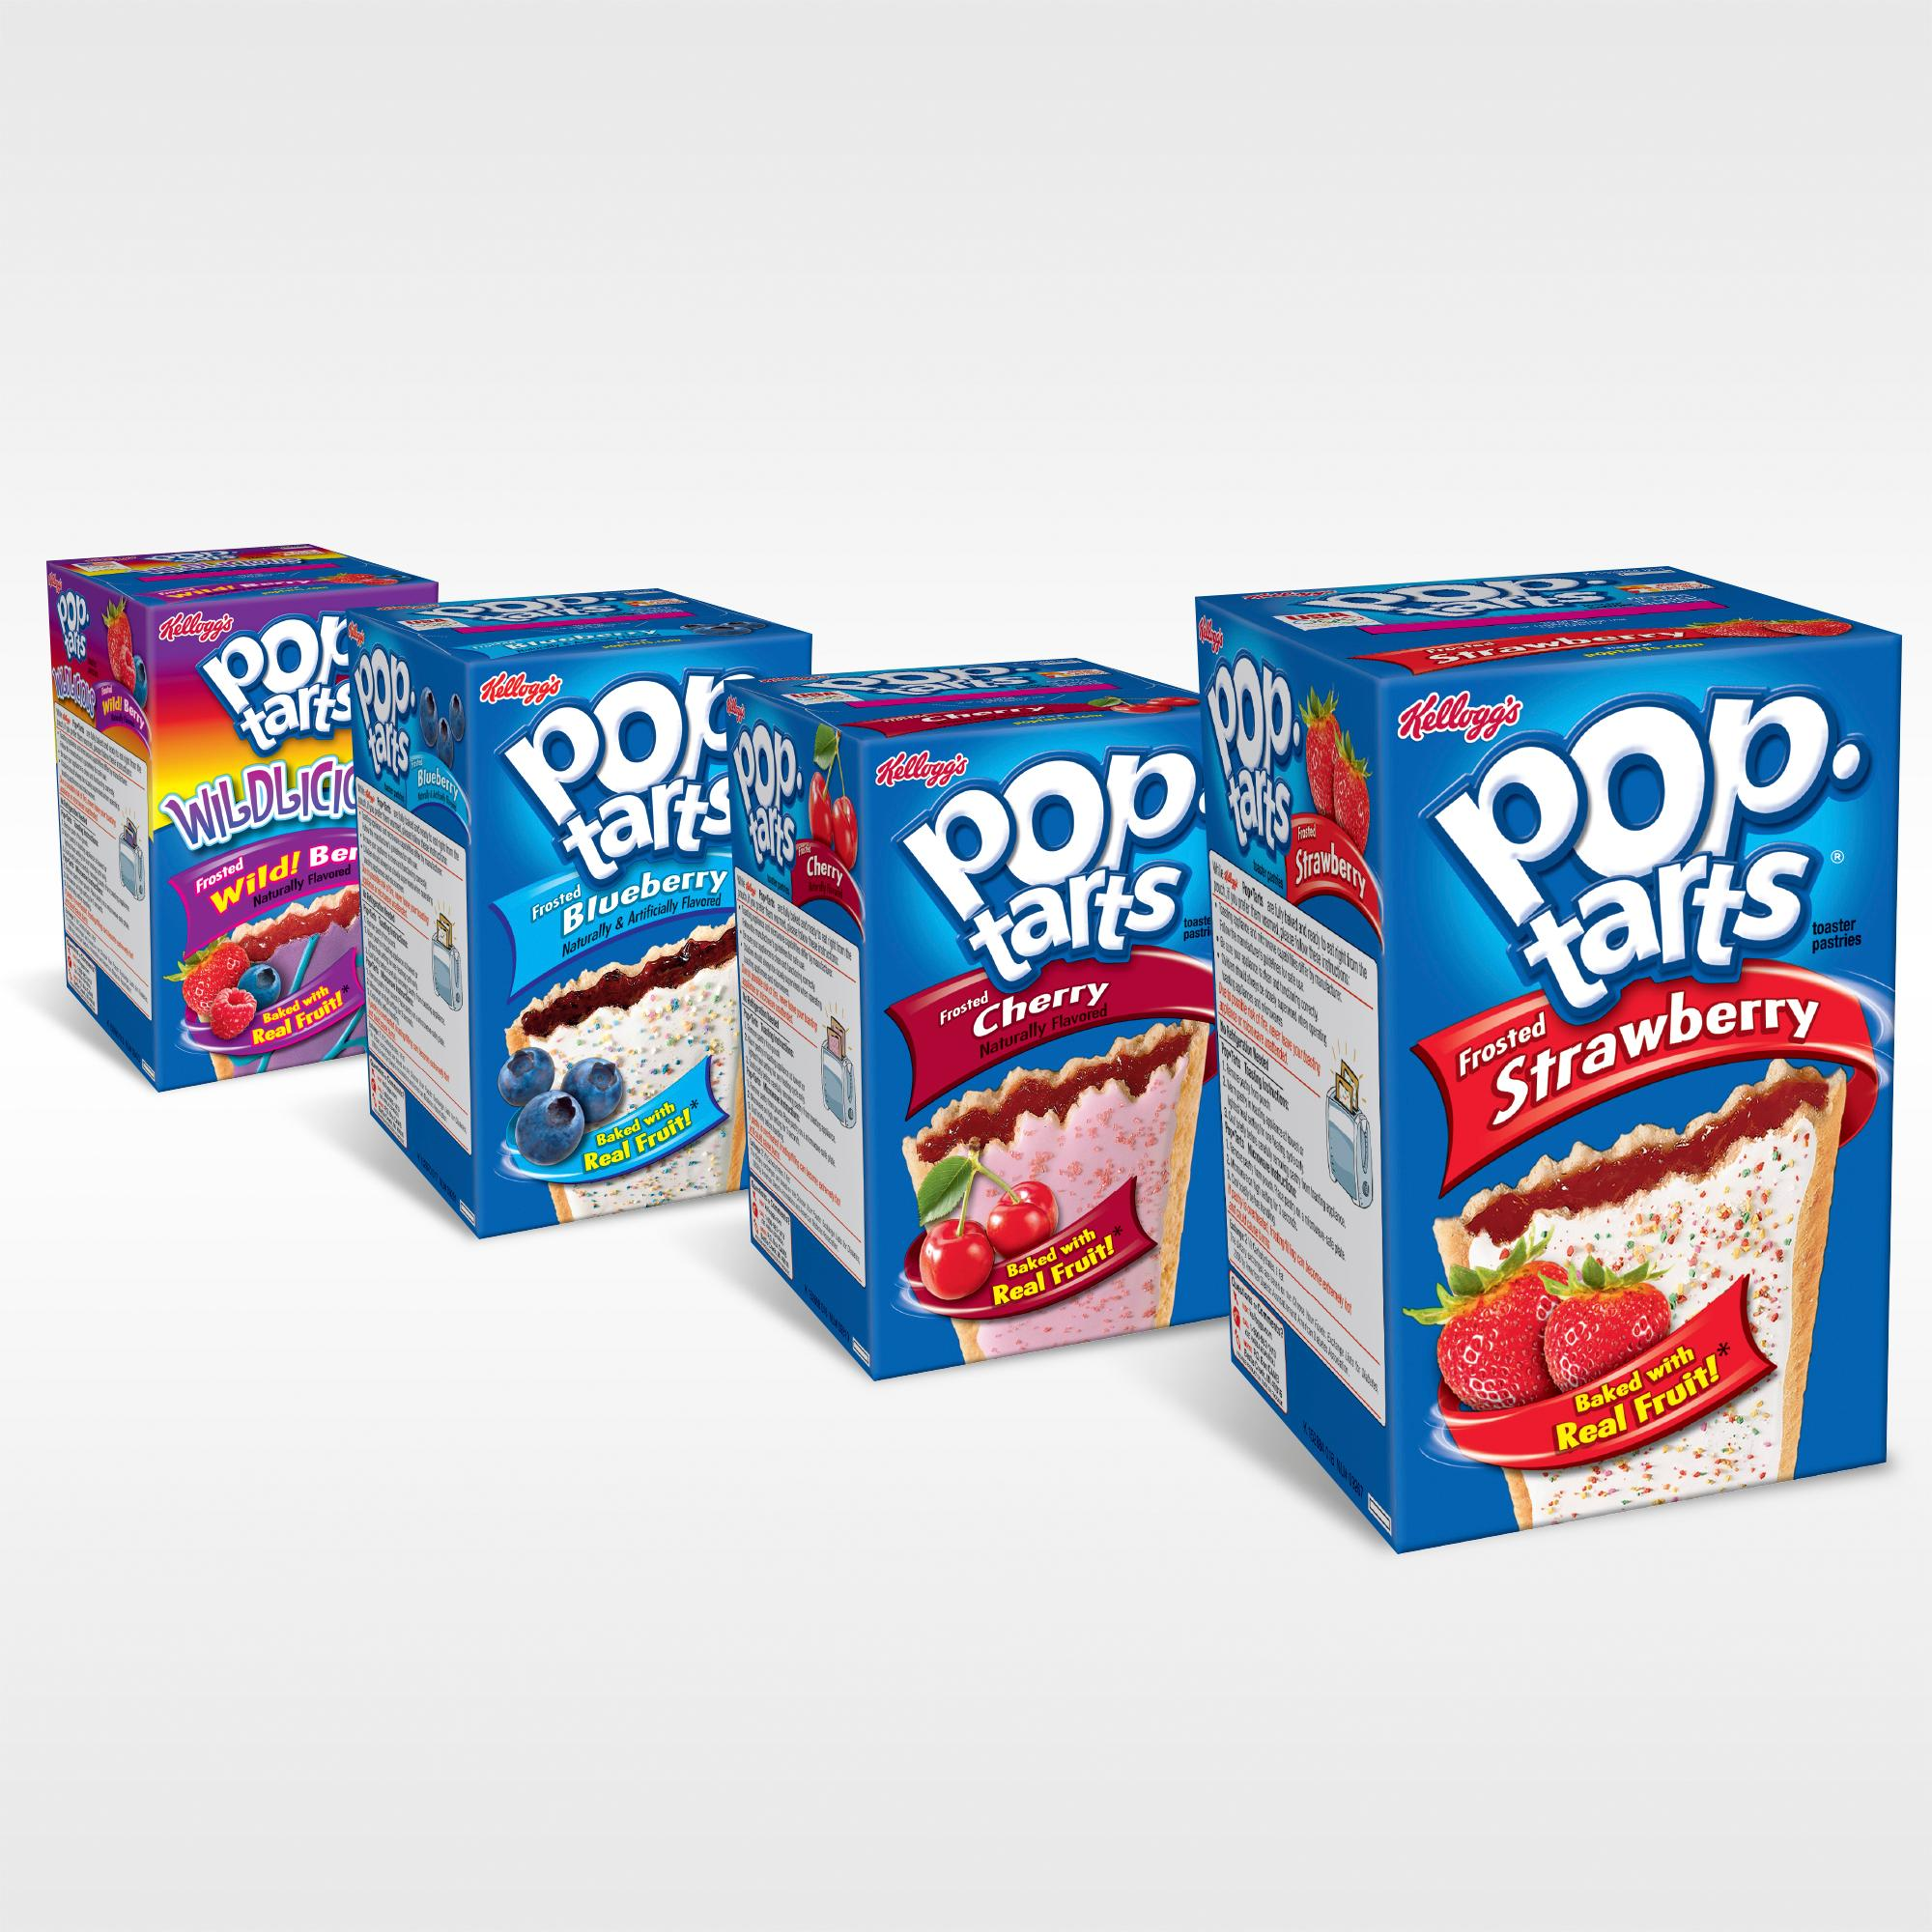 Amazon.com: Pop-Tarts, Frosted Strawberry, 32 Count, 58.61 Ounce: